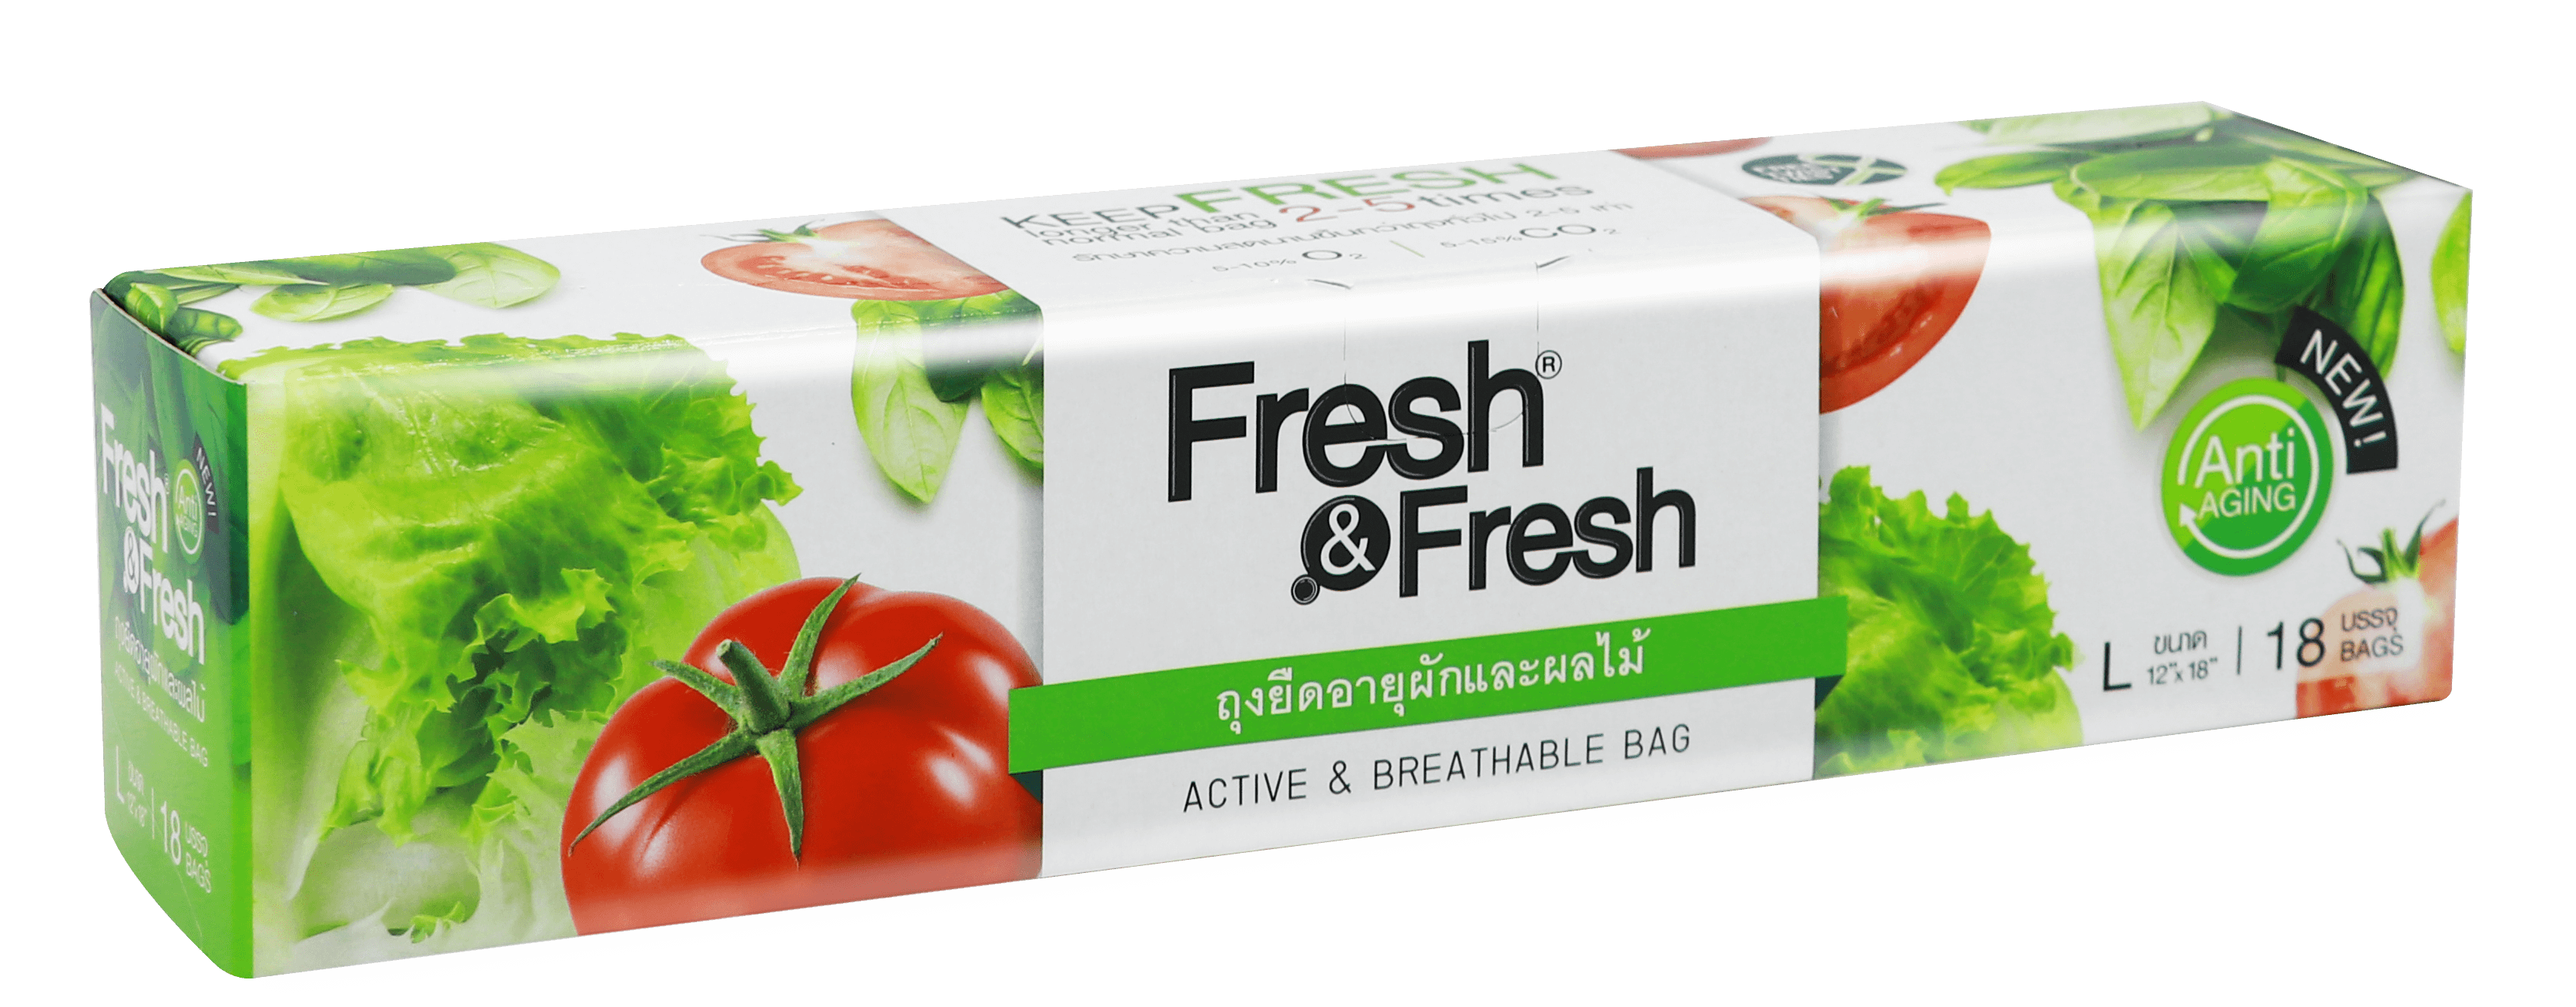 Fresh & Fresh Active & Breathable Bag